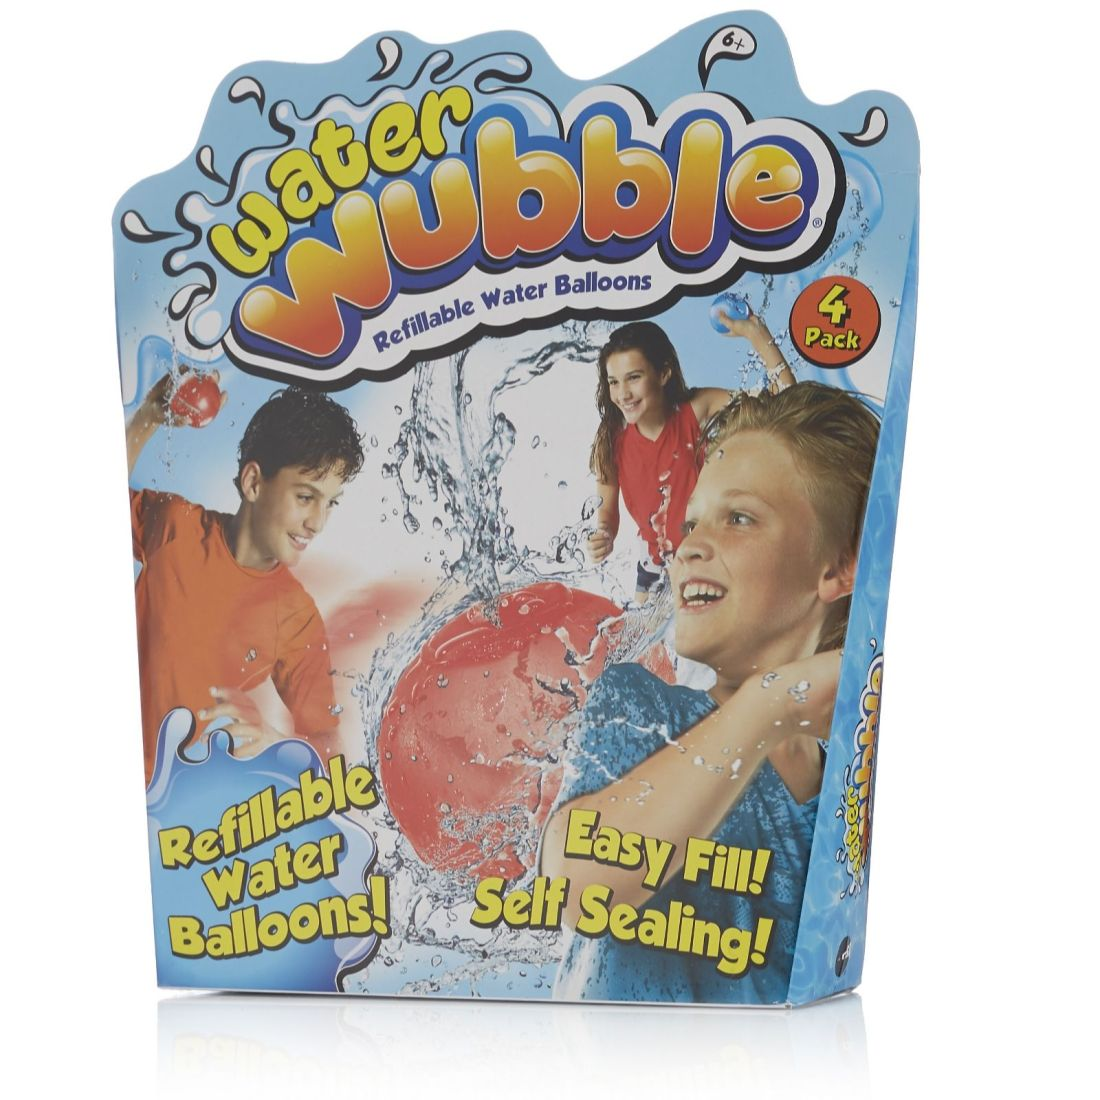 Refillable water balloons